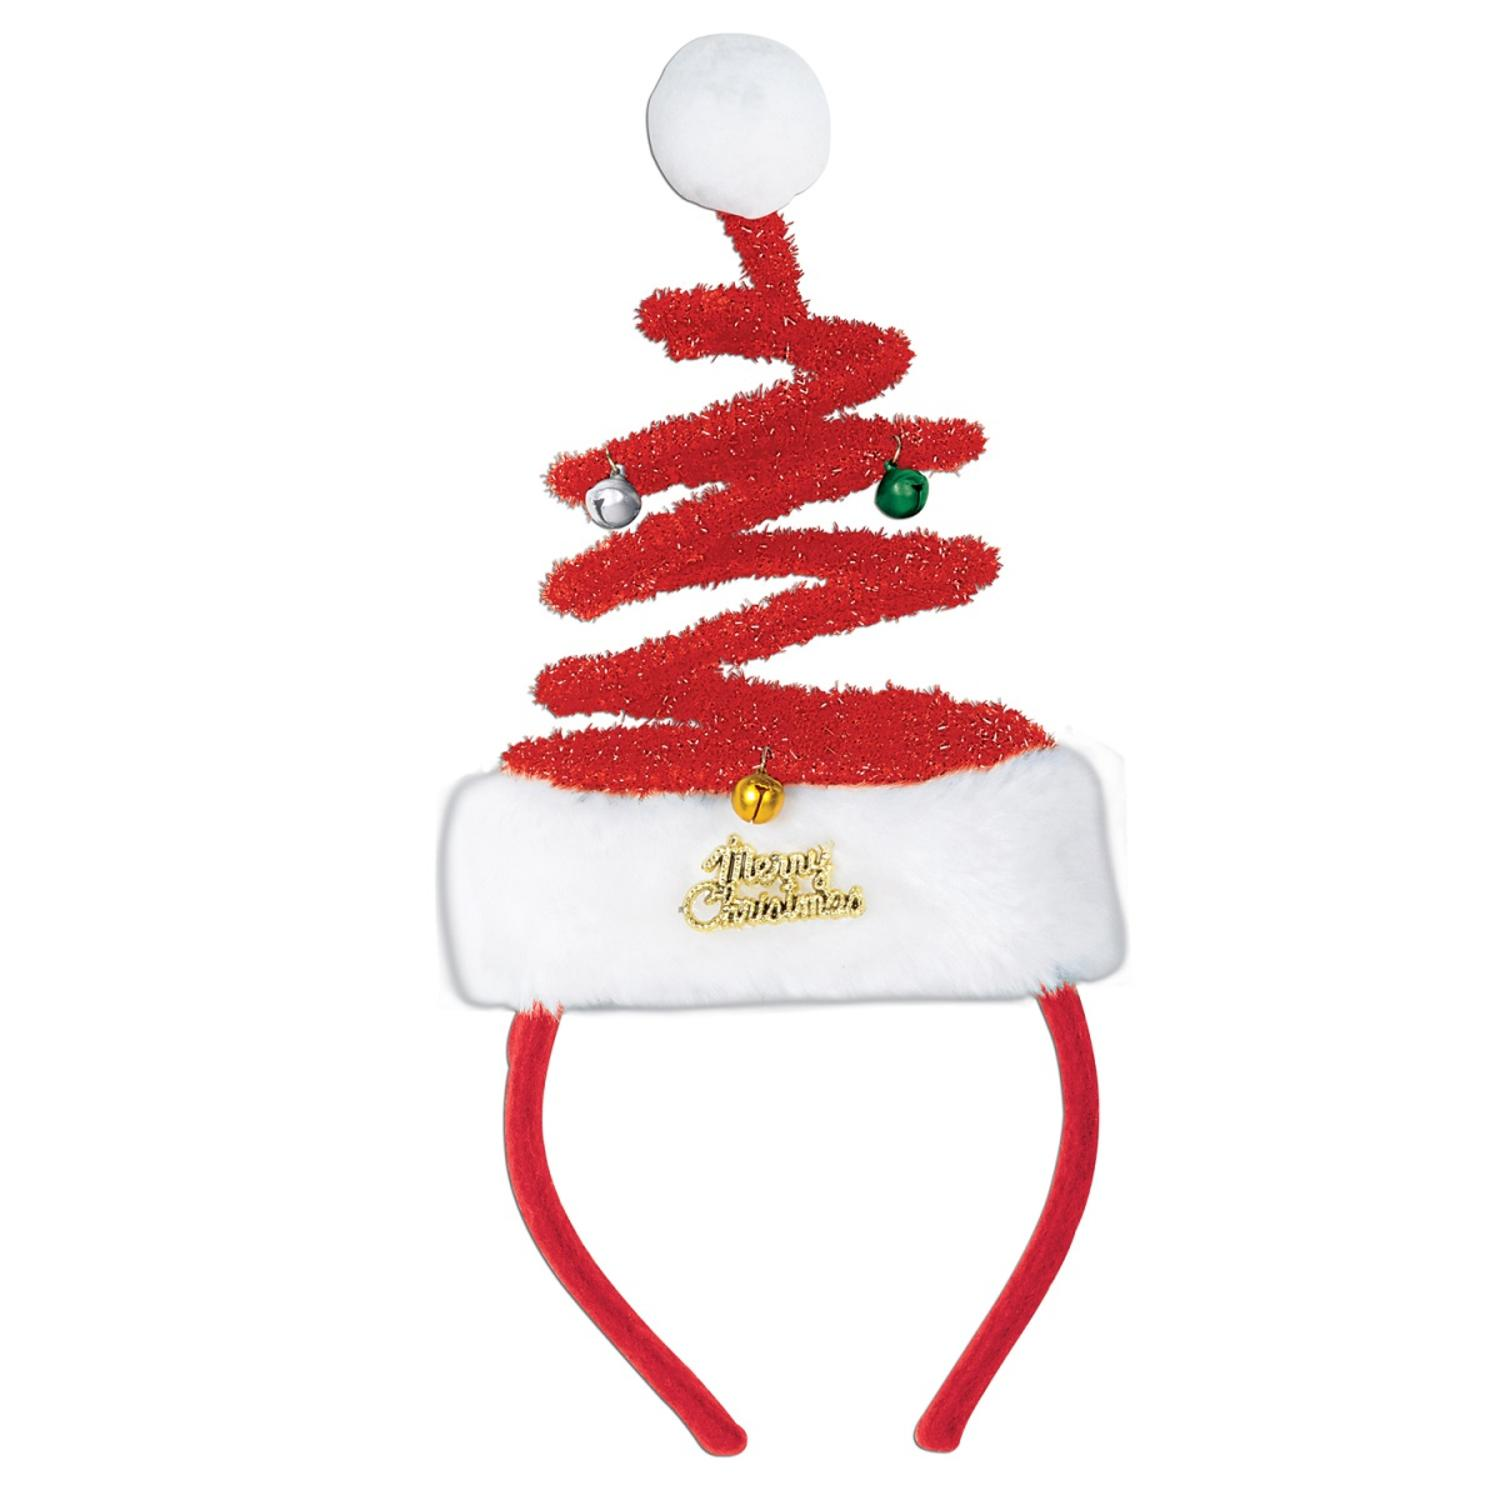 Pack of 12 Santa Claus Springy Tree Snap-on Christmas Headband Accessories